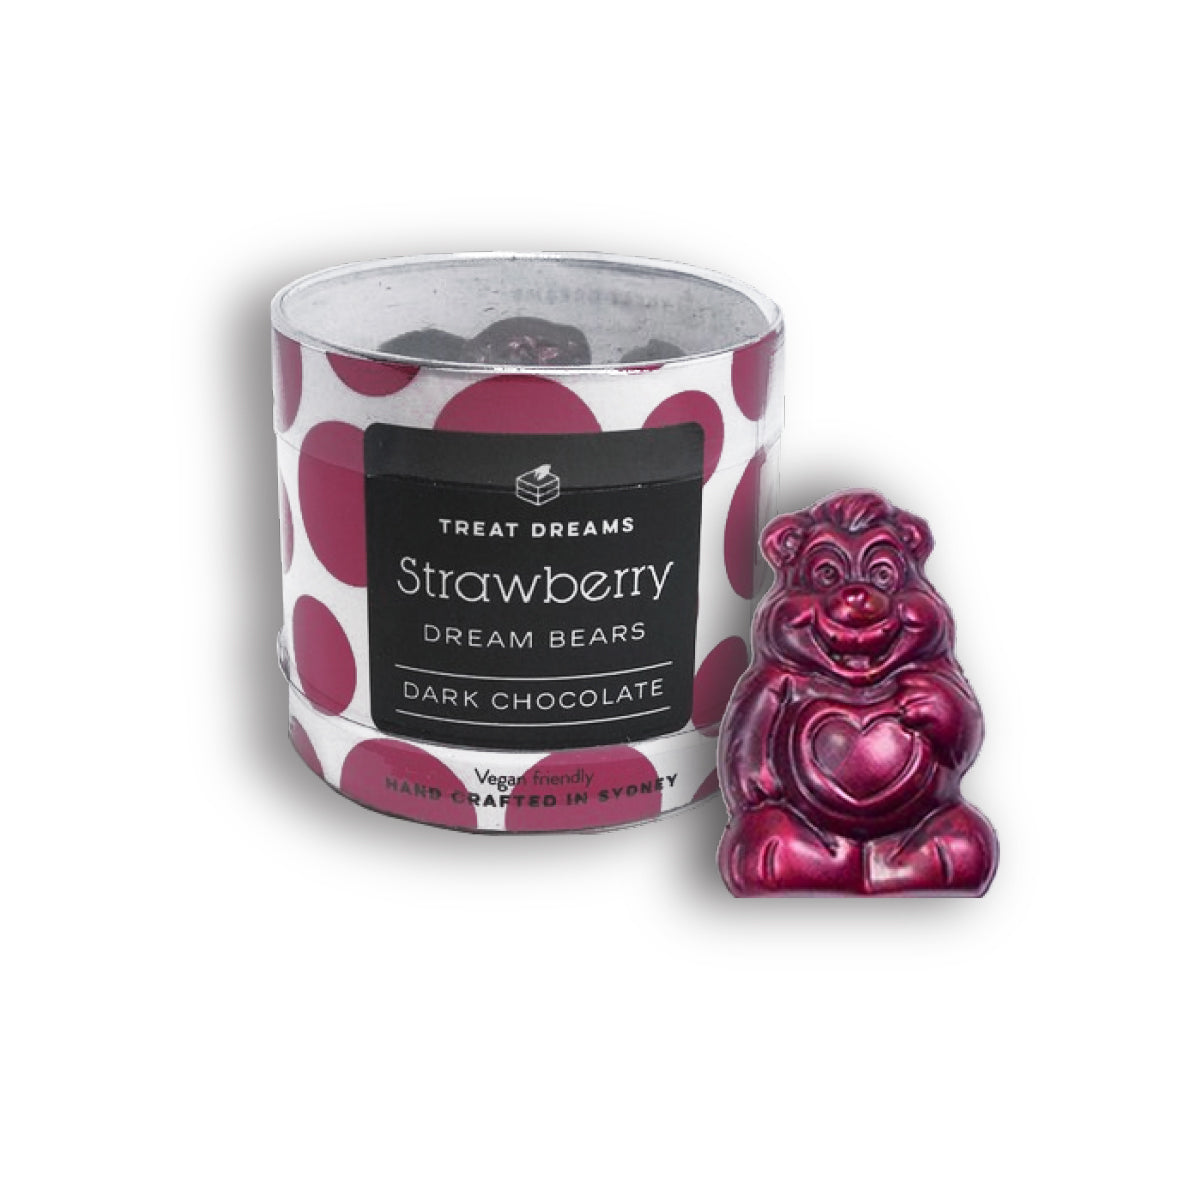 Treat Dreams - Dream Bear - Strawberry Tub 10 Pack 140g